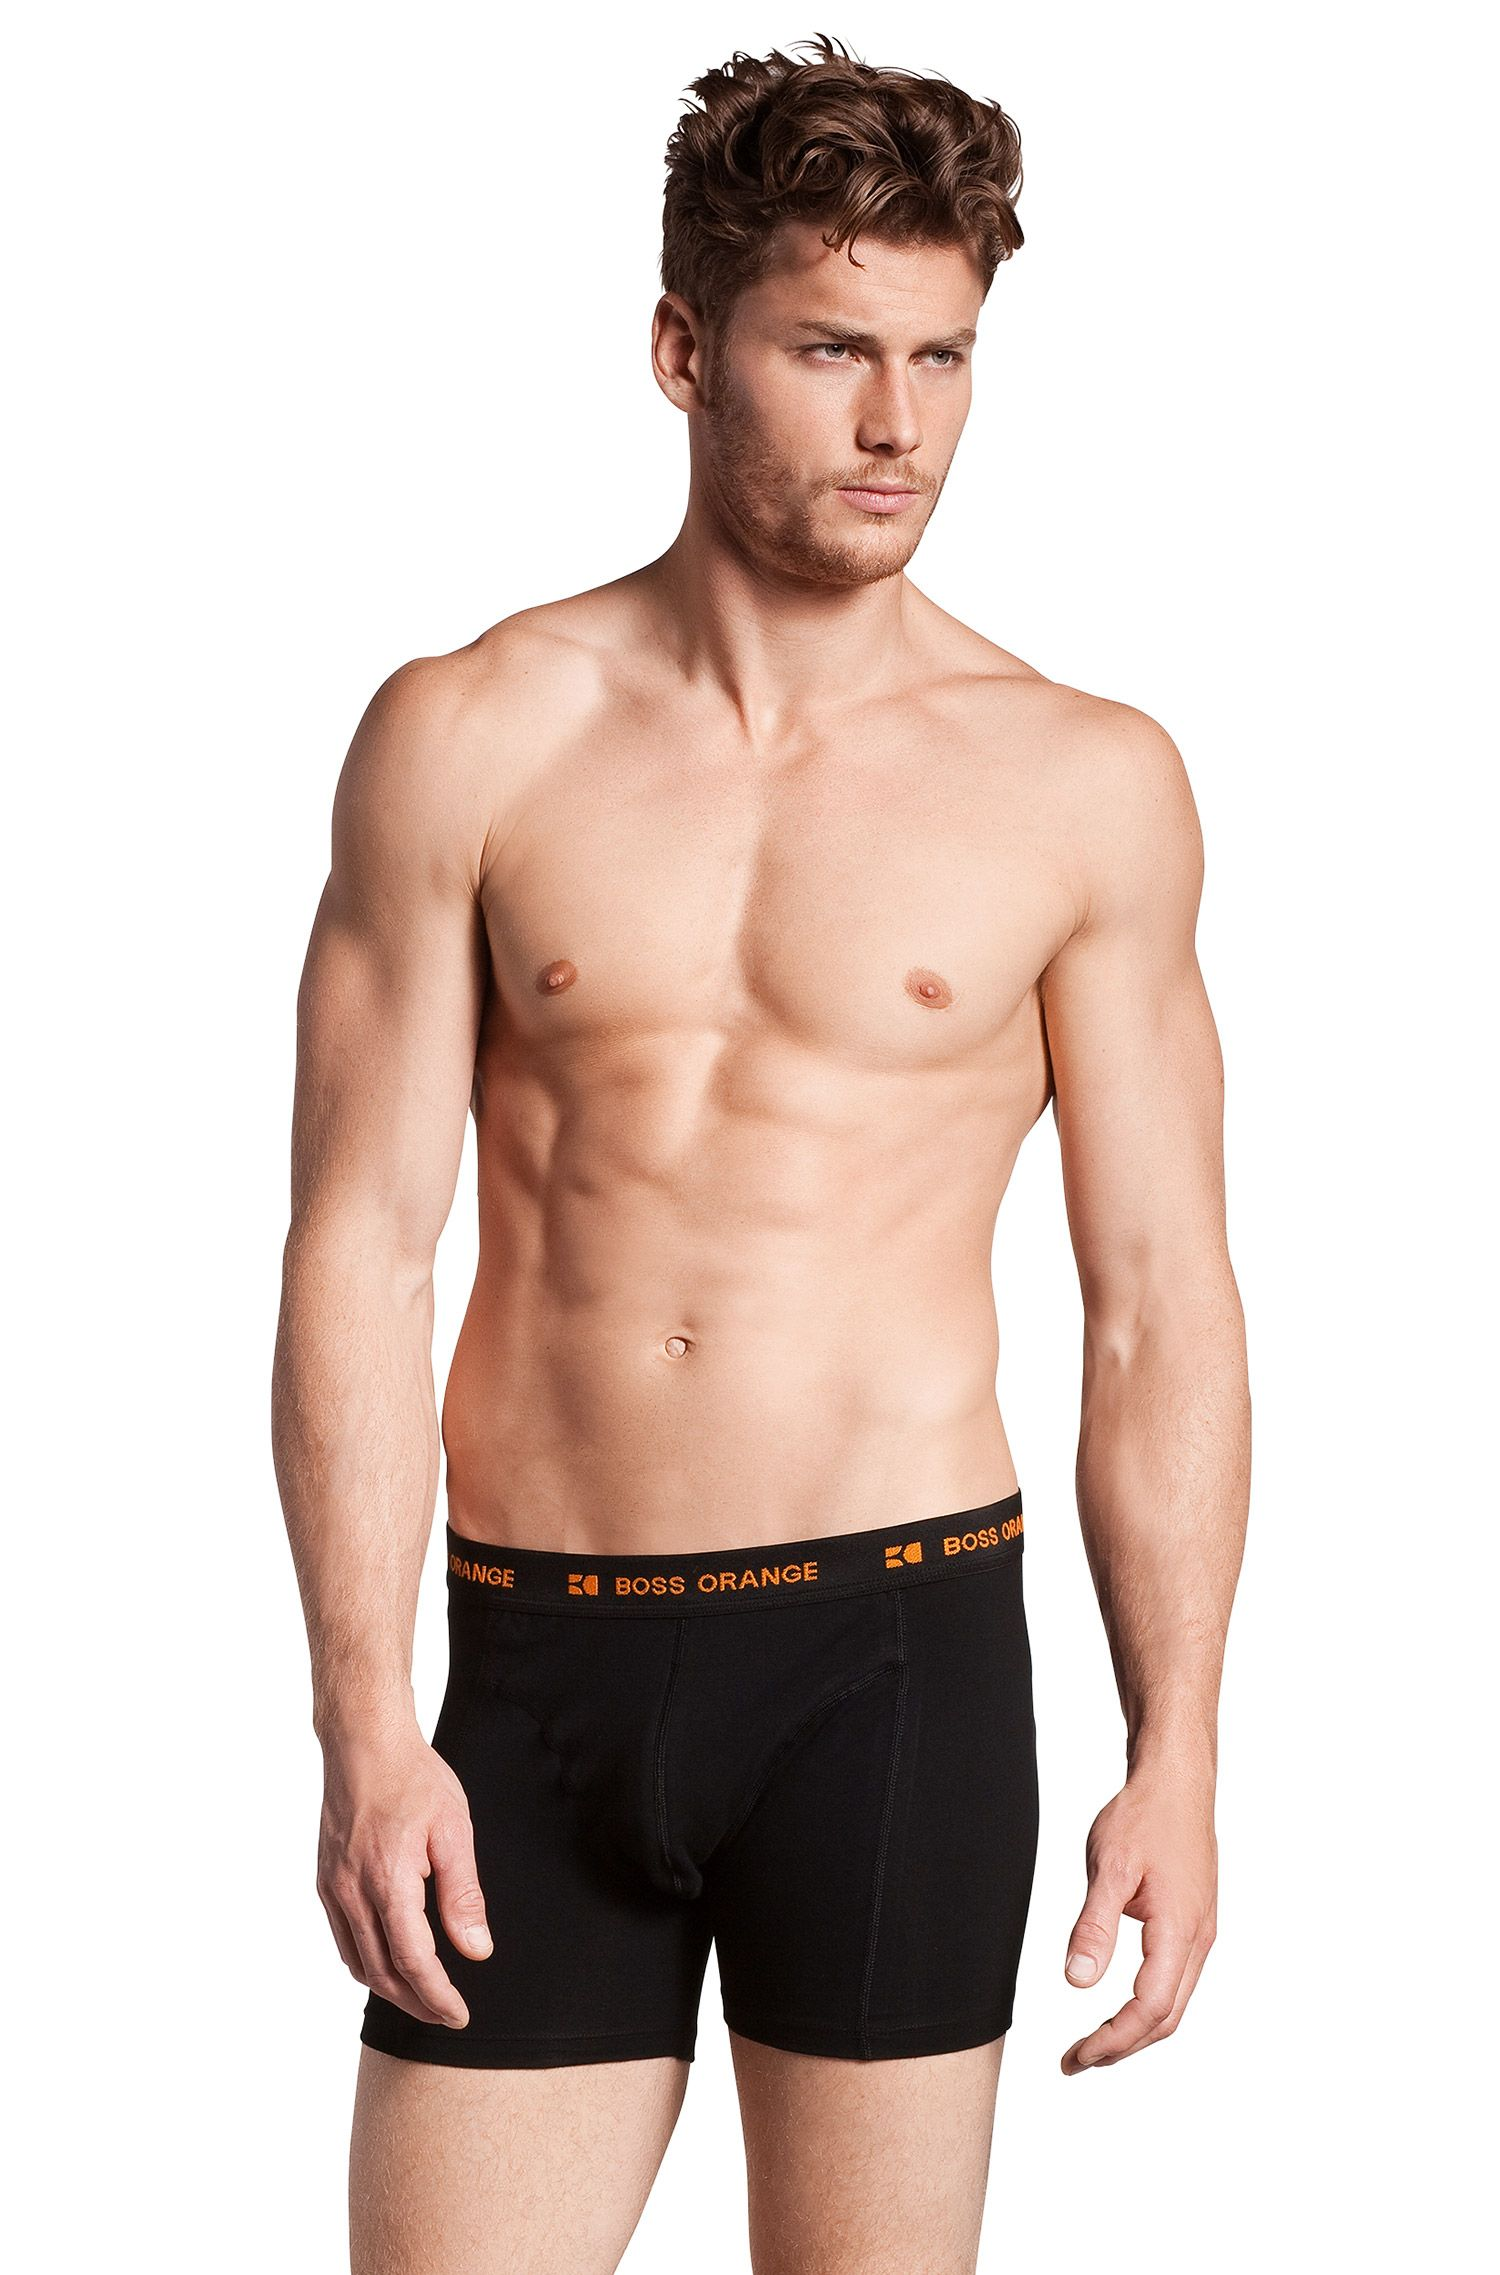 Boxer Shorts ´Cyclist 2P OM` im Doppelpack